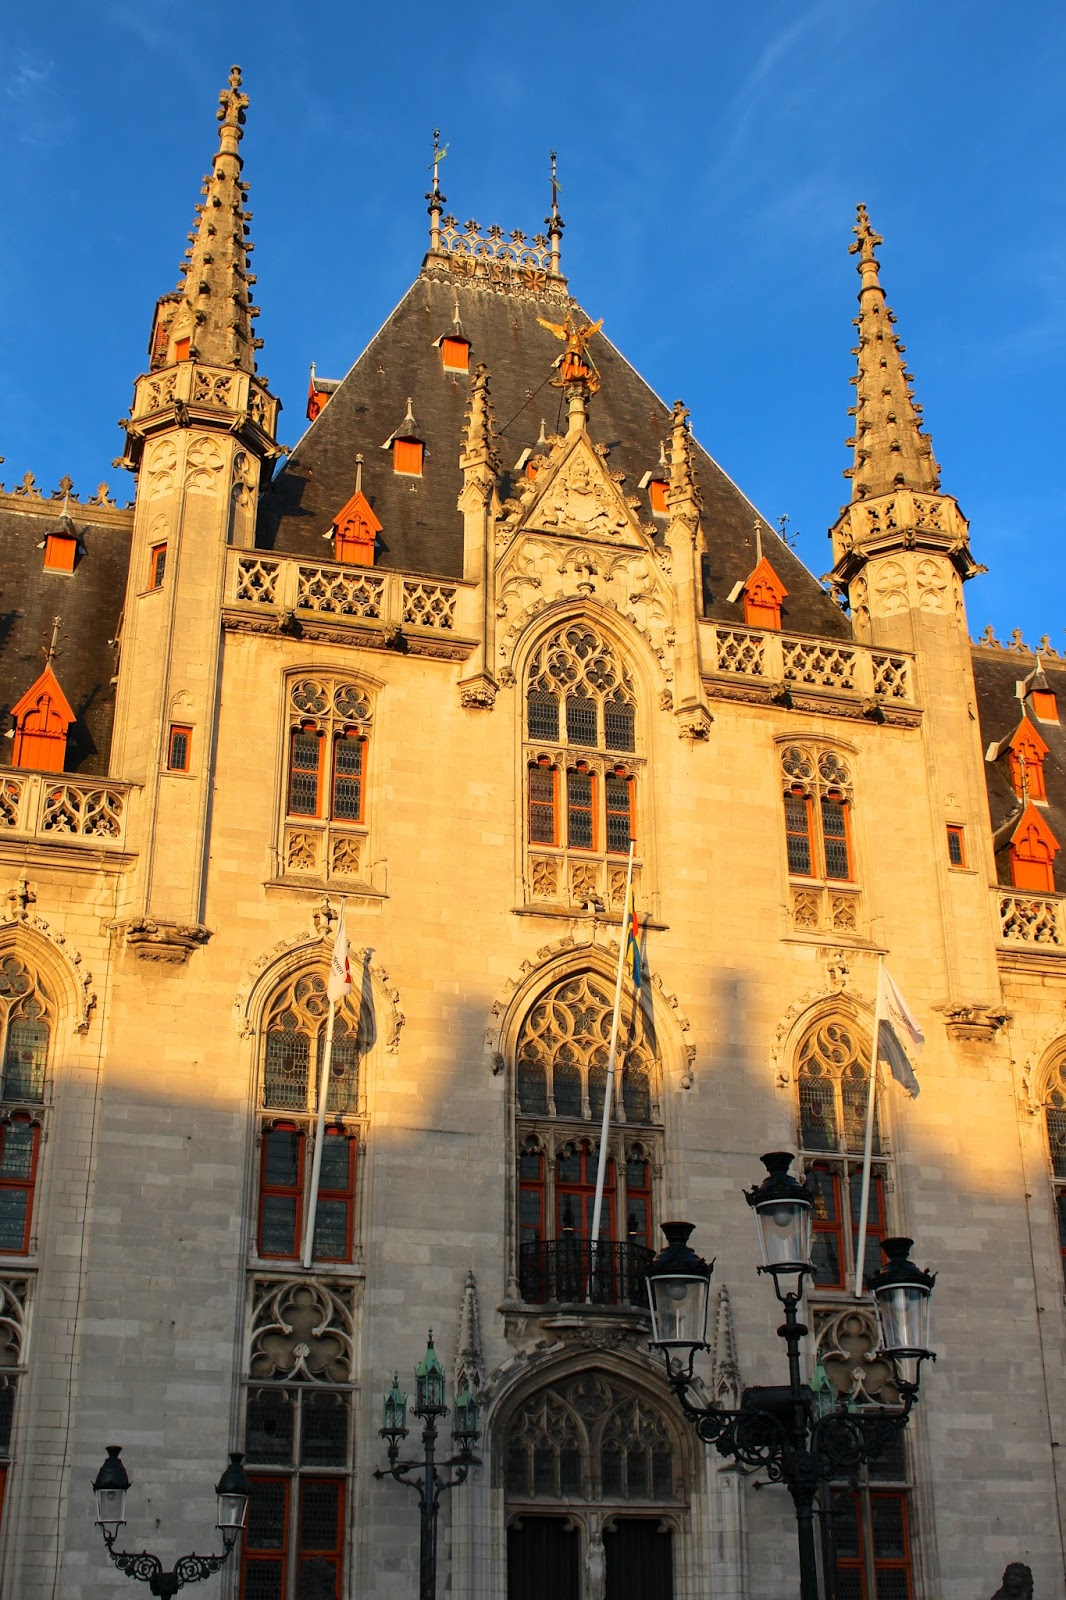 Sunset photography of historic city Bruges